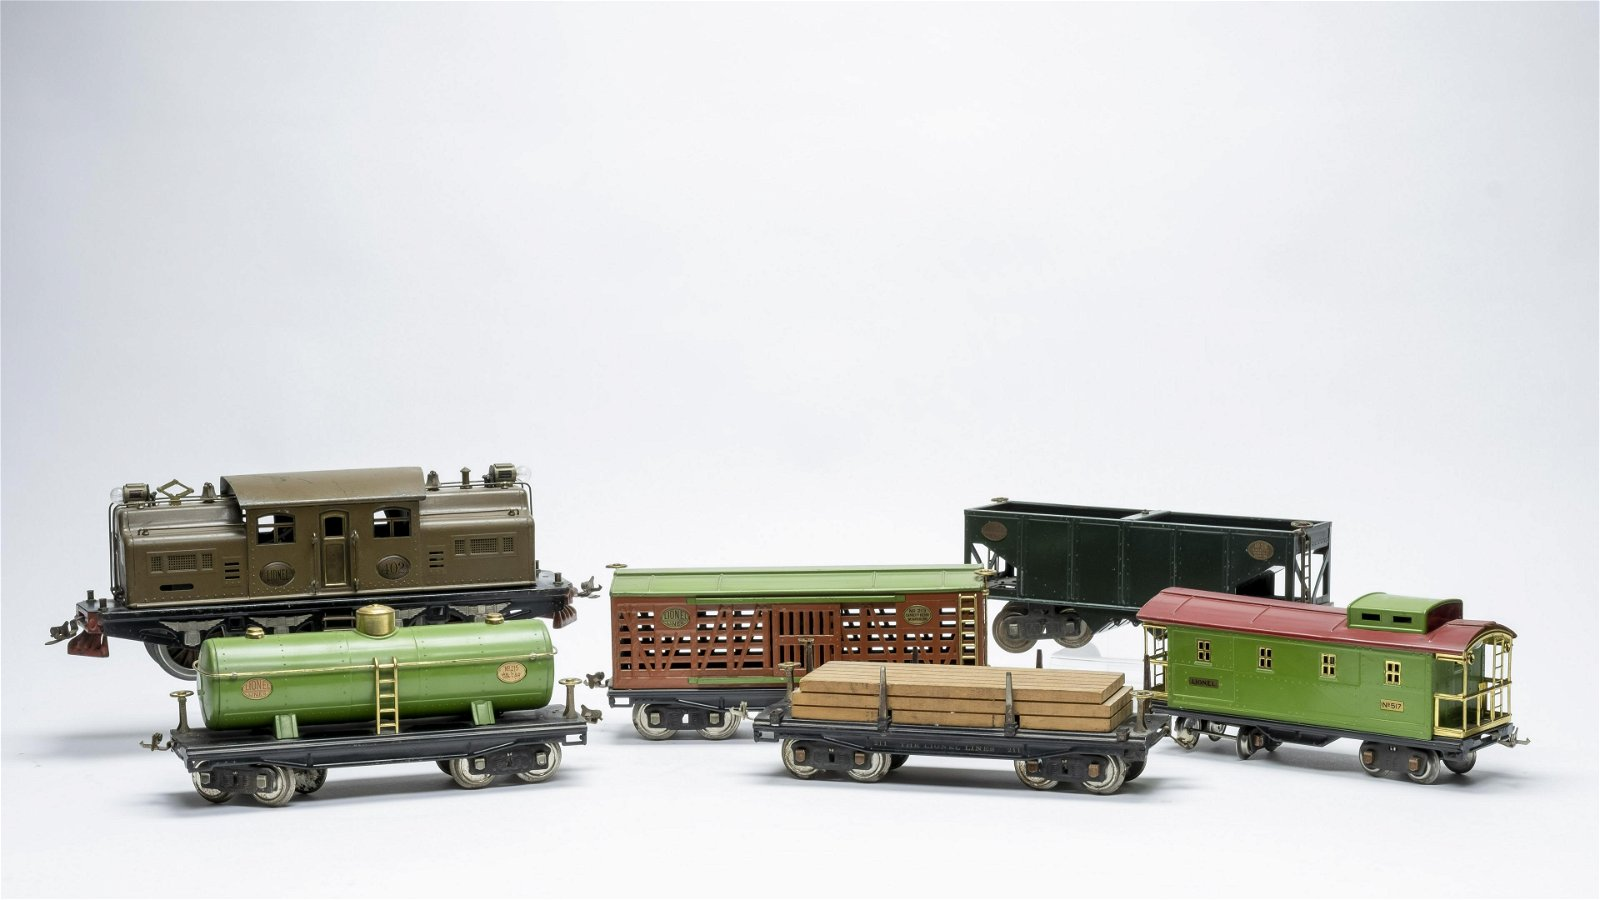 Lionel #402 Engine and Train Cars